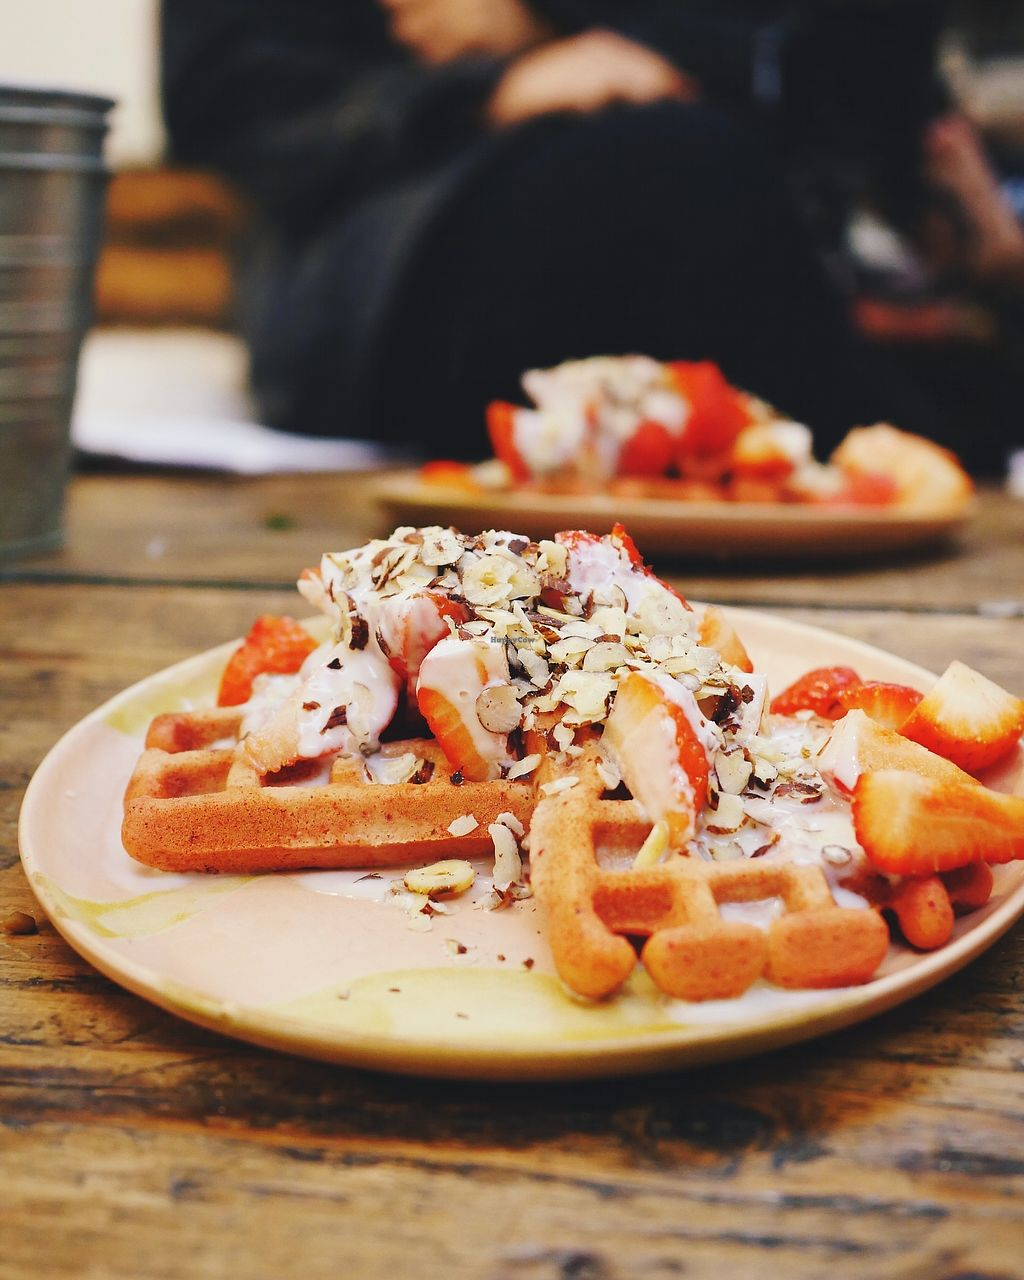 """Photo of Cupcakes and Shhht  by <a href=""""/members/profile/YukiLim"""">YukiLim</a> <br/>Pink beet waffles topped with hazelnuts, strawberries and oat cream <br/> September 21, 2017  - <a href='/contact/abuse/image/69166/306661'>Report</a>"""